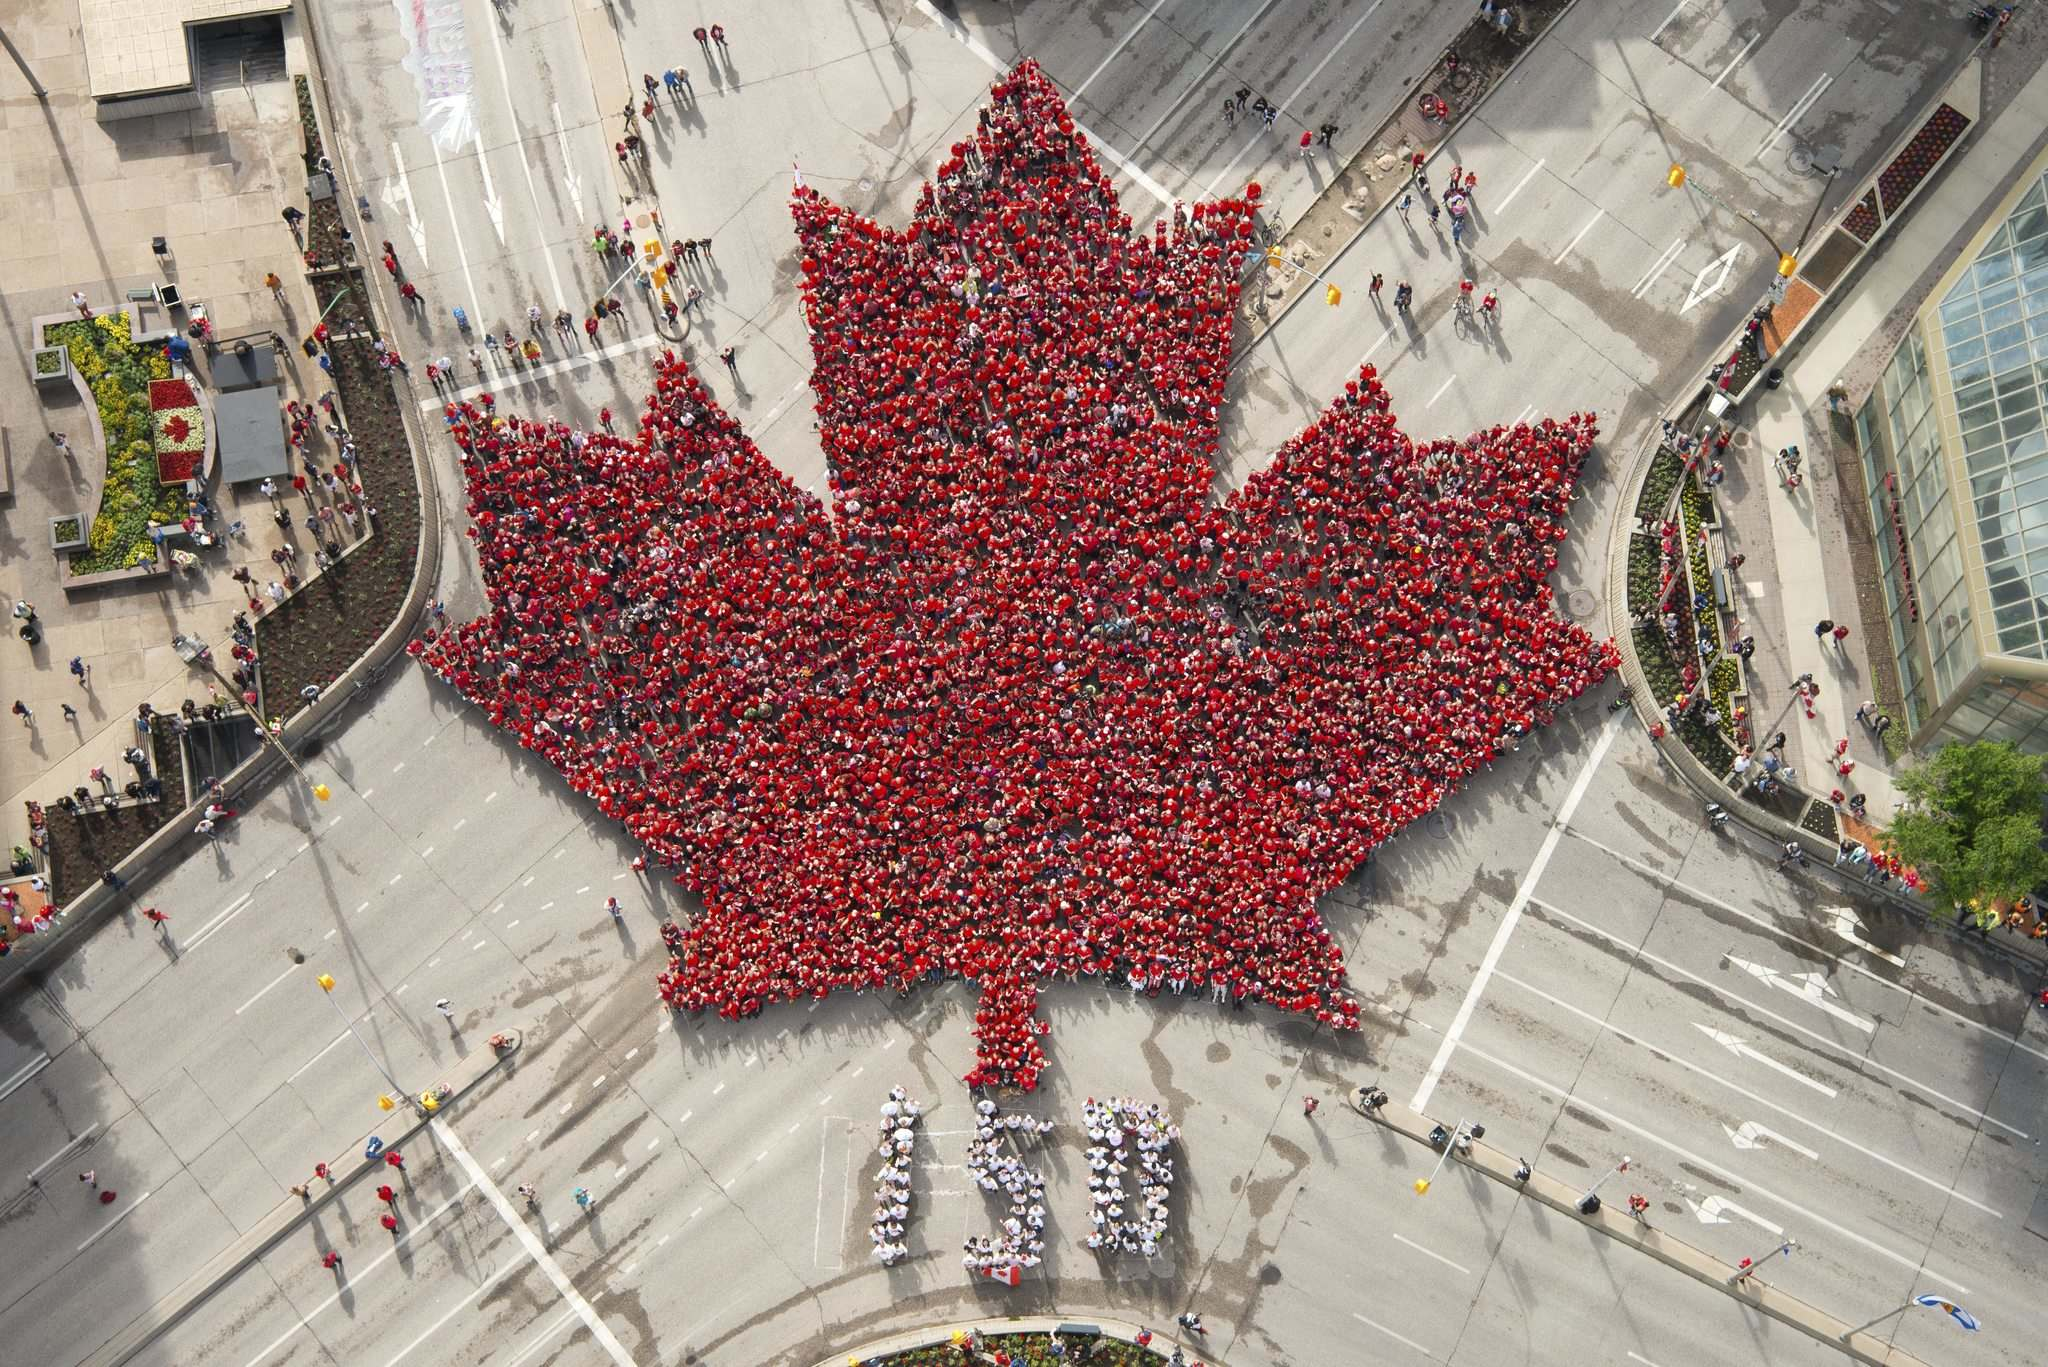 The living maple leaf takes shape at Portage and Main on Canada Day in 2017. (Dan Harper photo)</p>